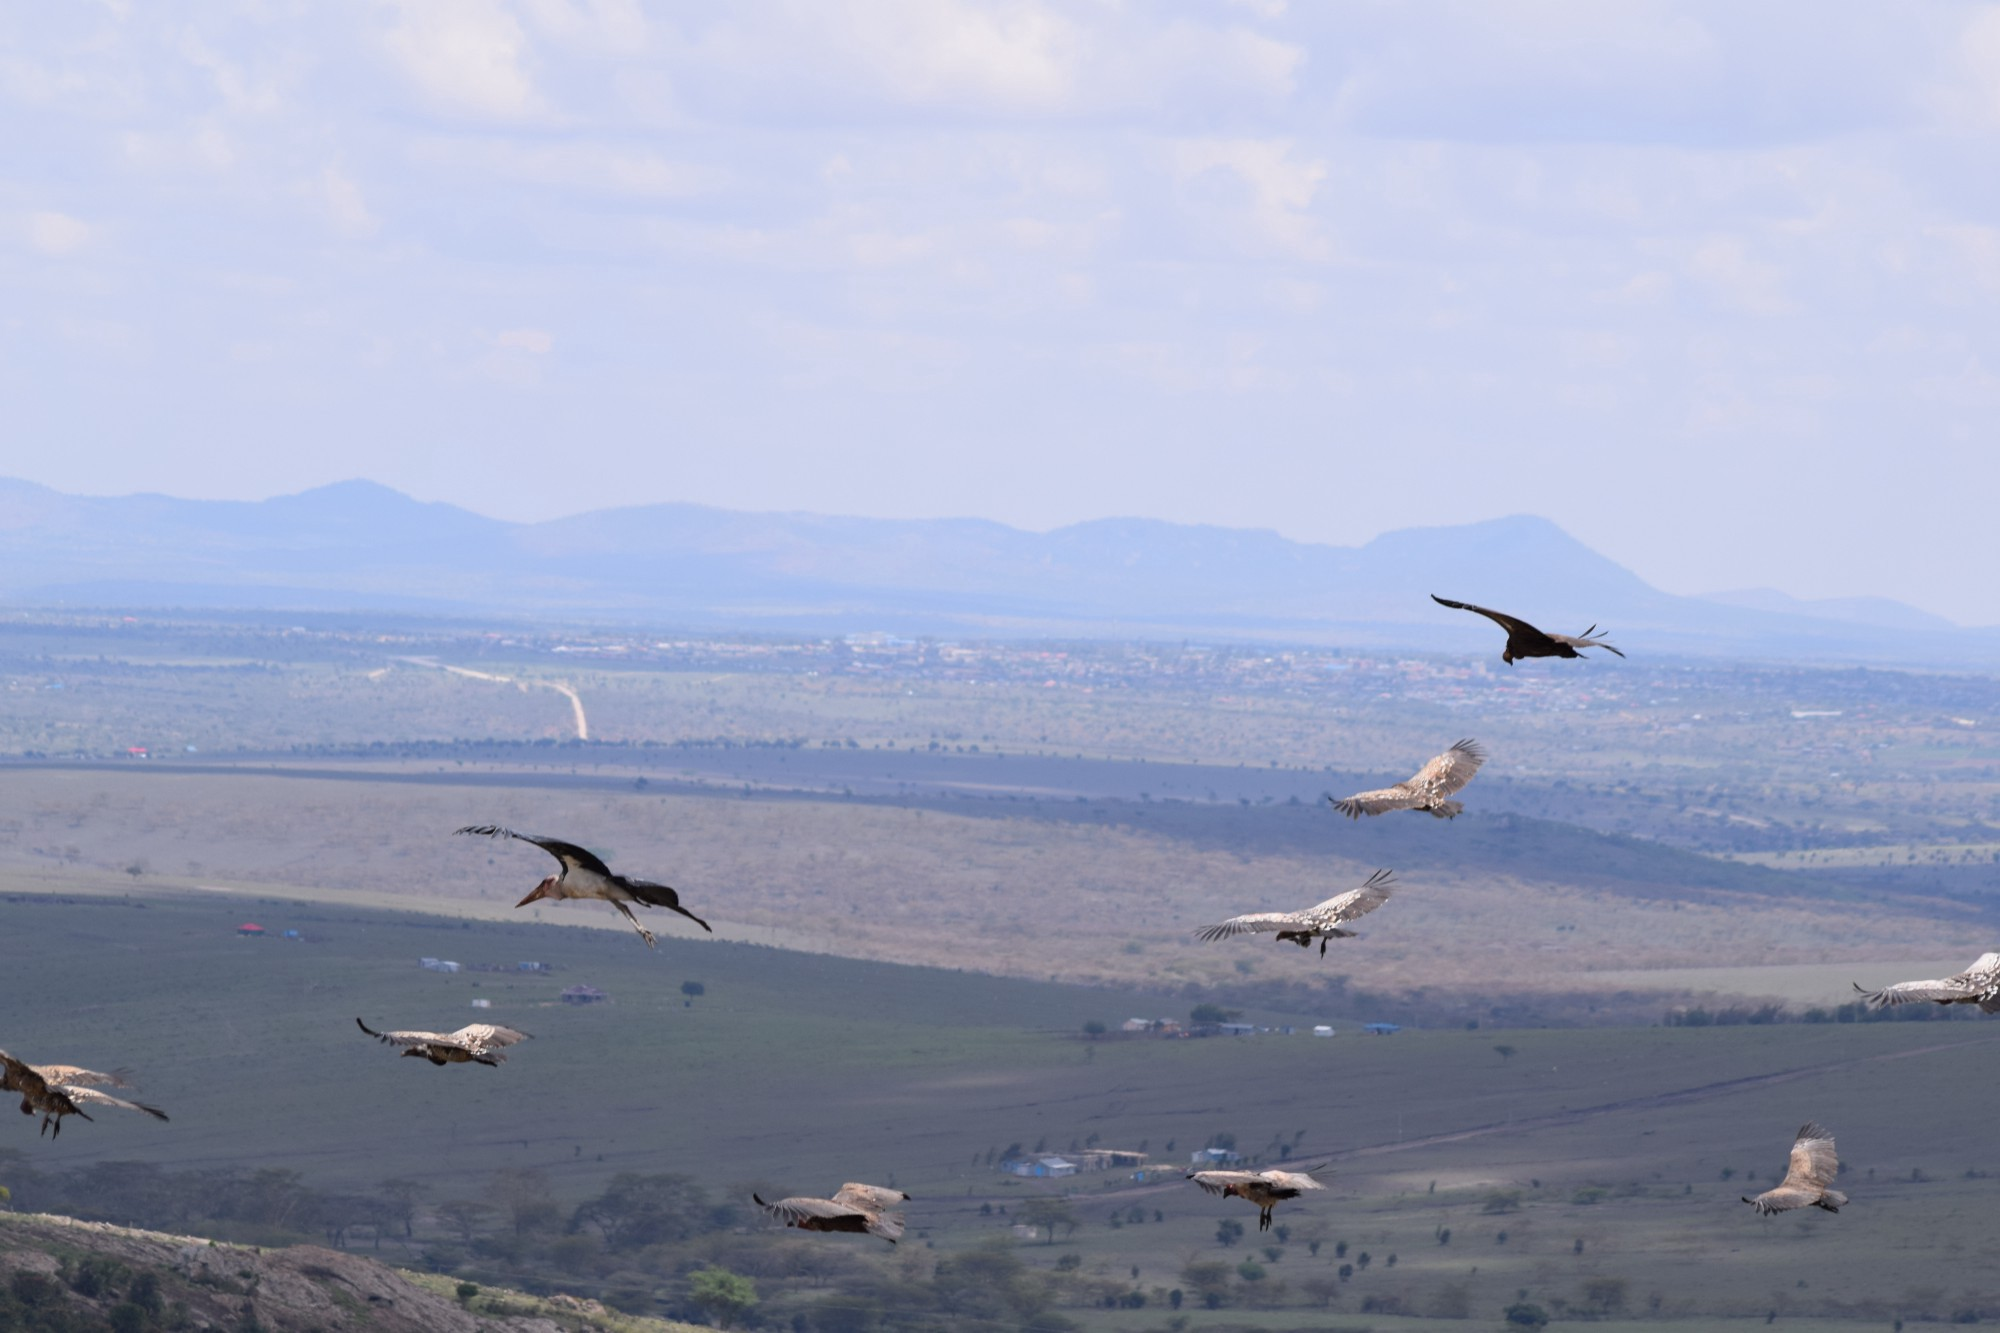 Vultures and a Marabou stork descend to feed at Kipeto